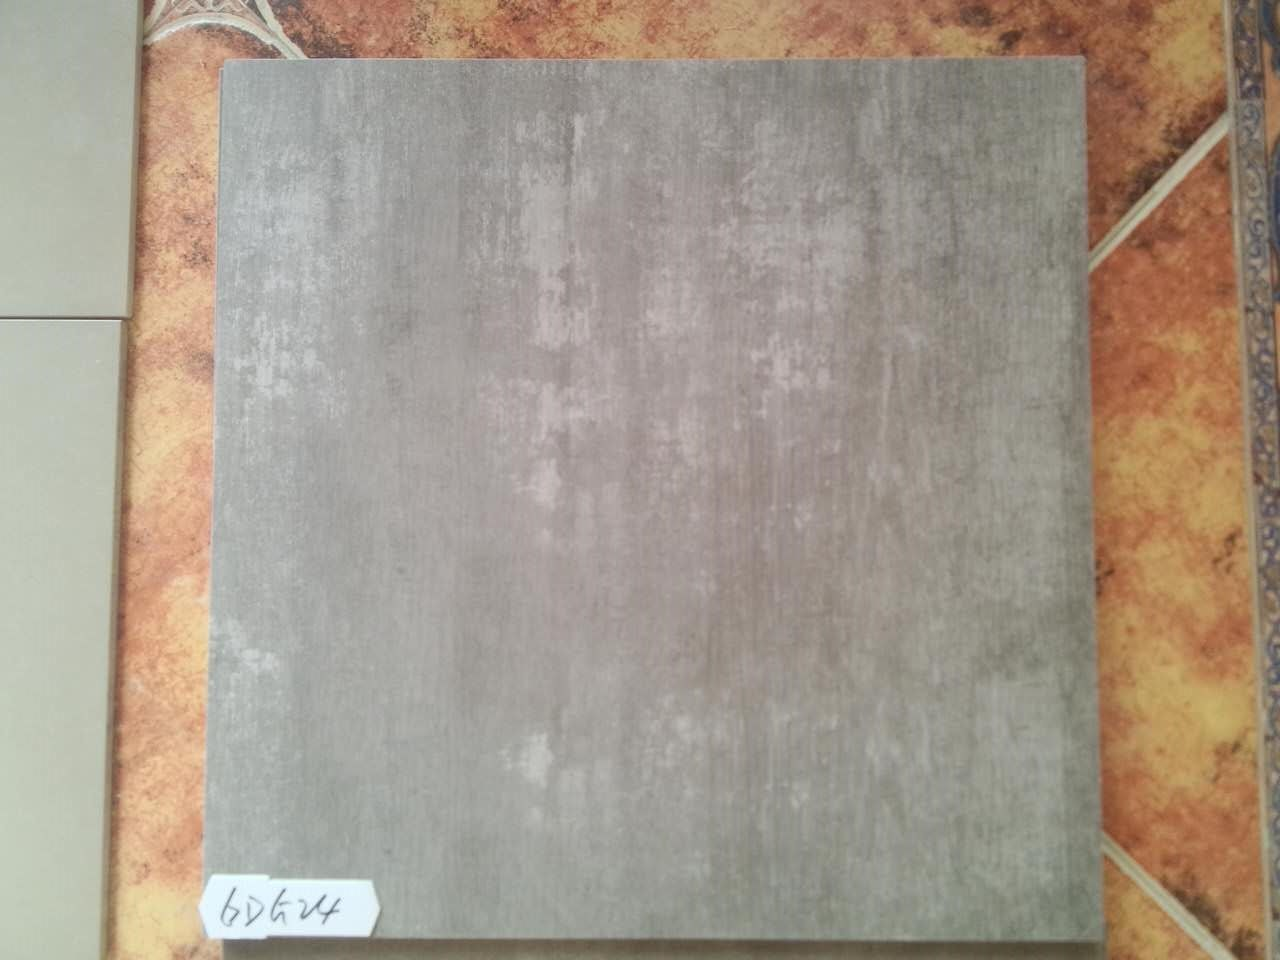 China concrete look tile rustic tile porcelain floor tile photos concrete look tile rustic tile porcelain floor tile doublecrazyfo Choice Image